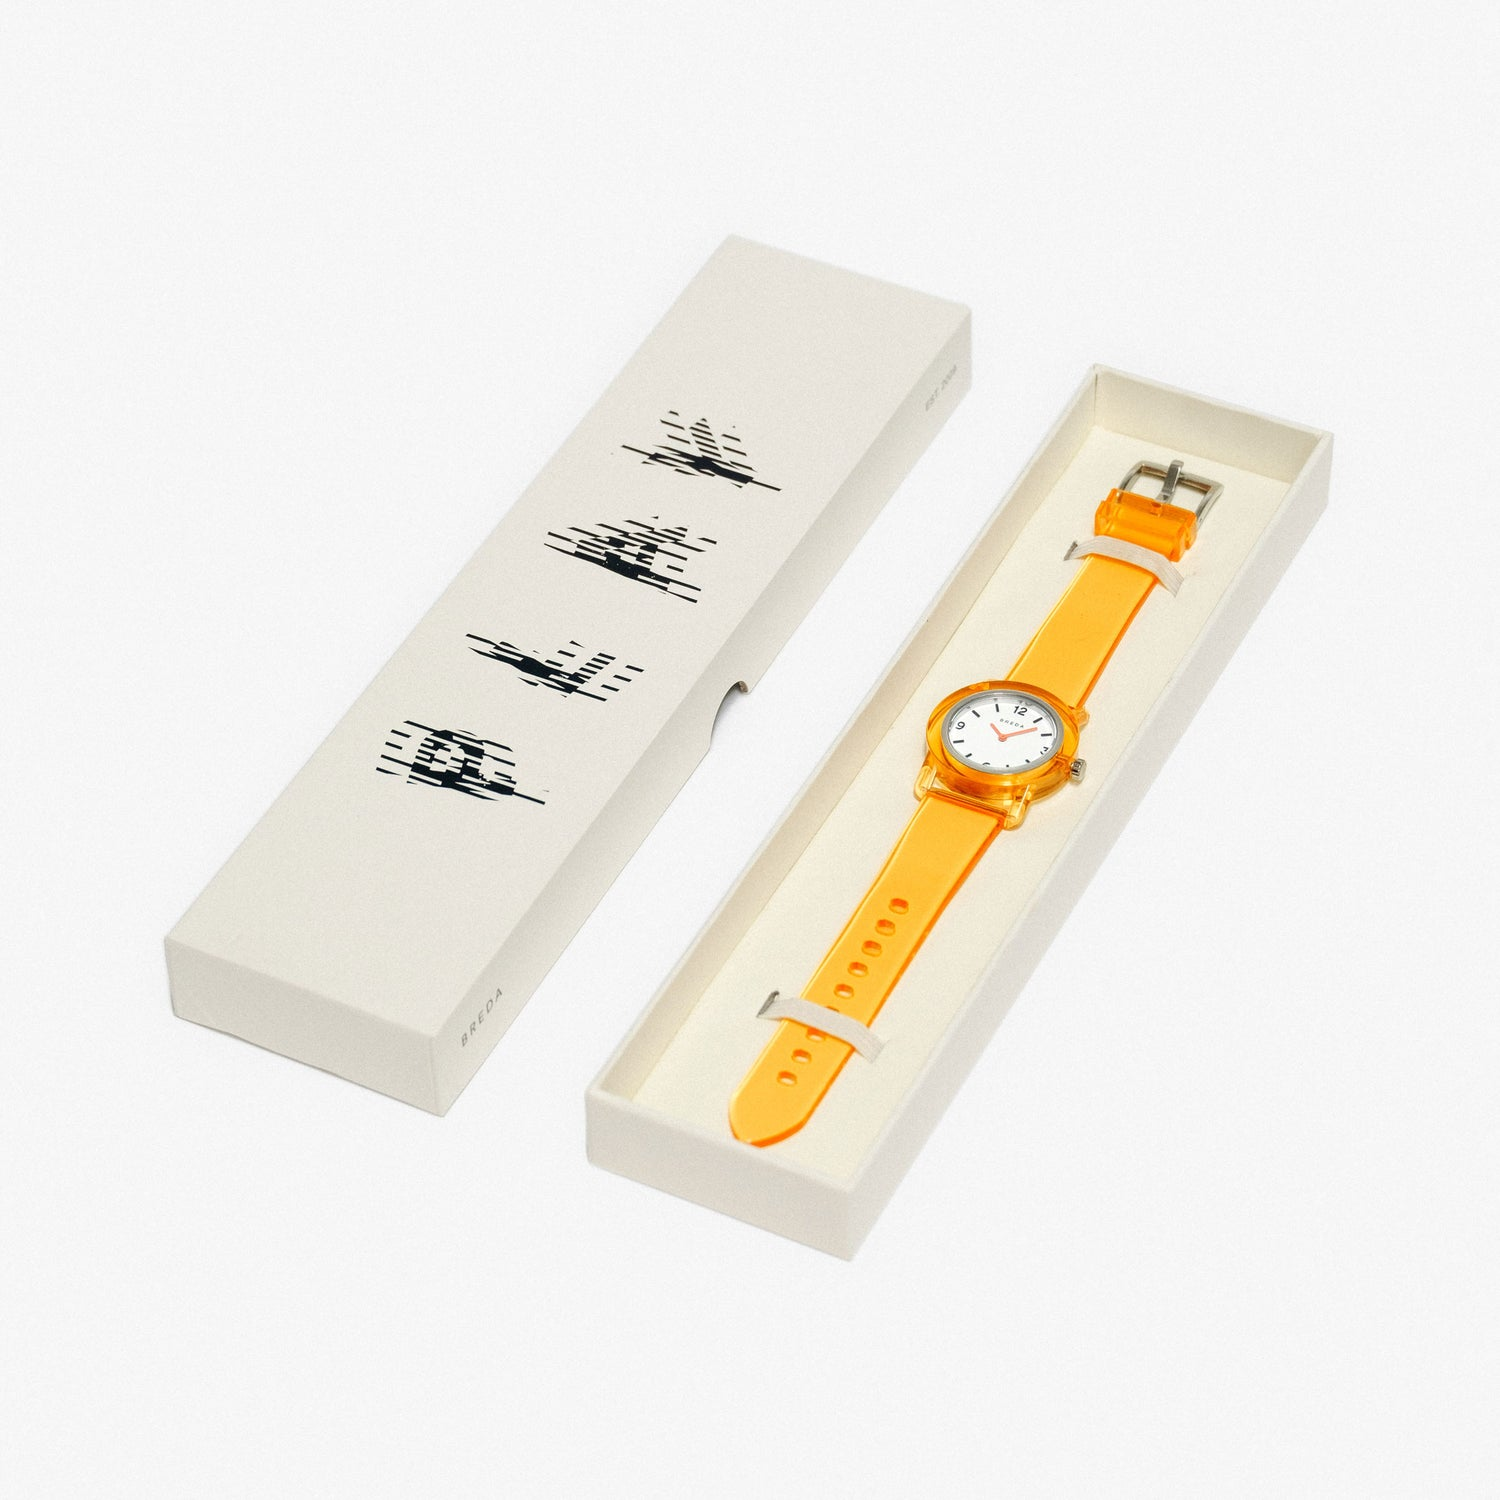 breda-play-1742a-silver-orange-plastic-watch-packaging